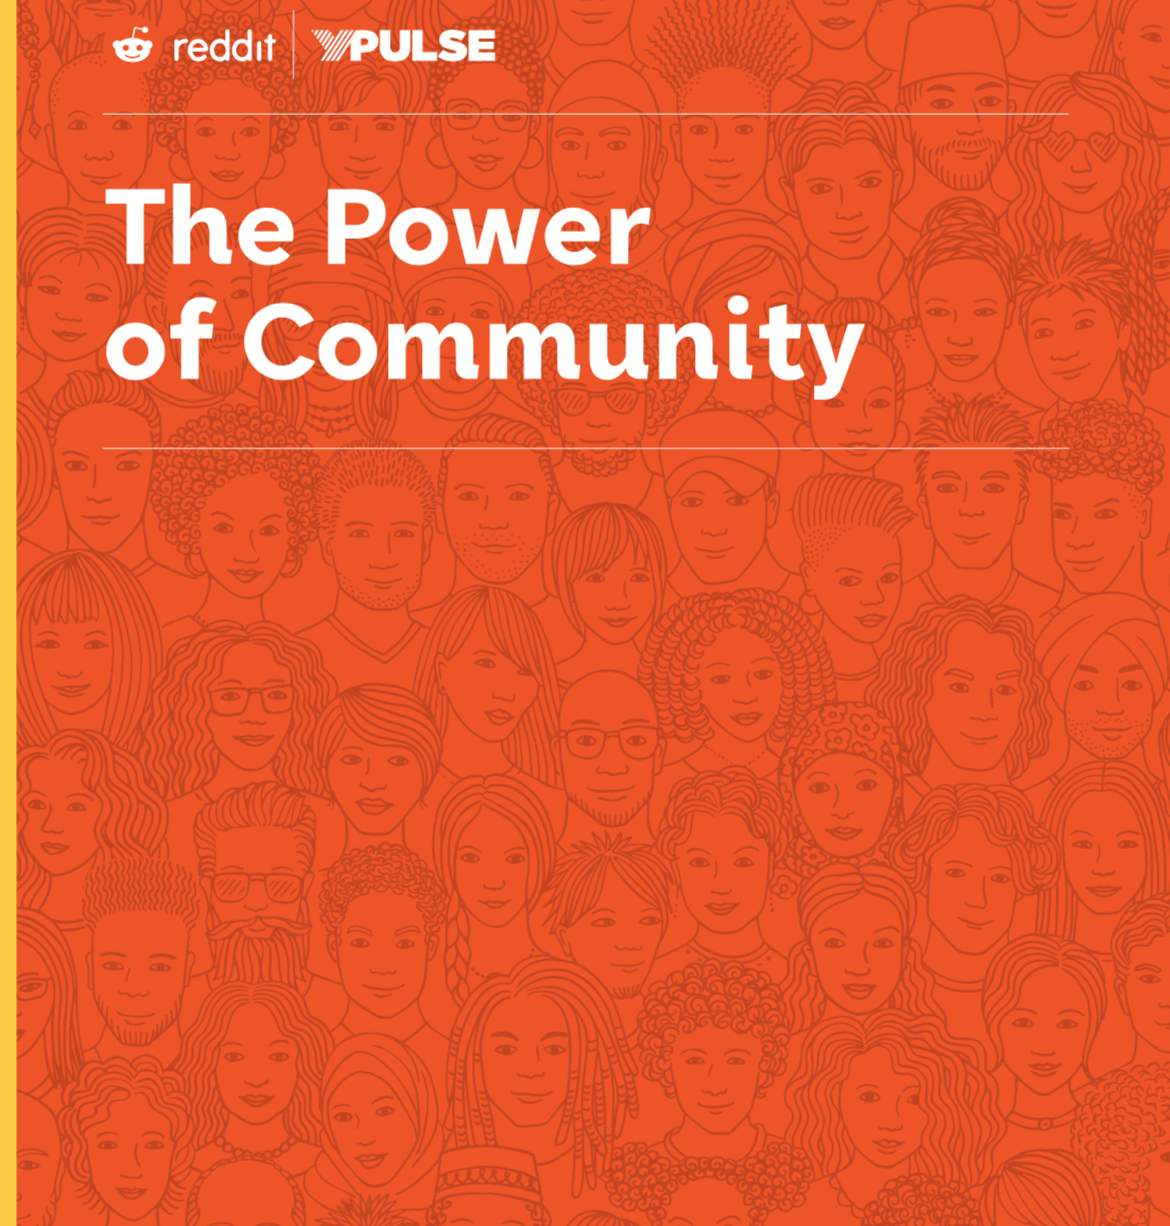 The Power of Community: A Research Project by Reddit & YPulse